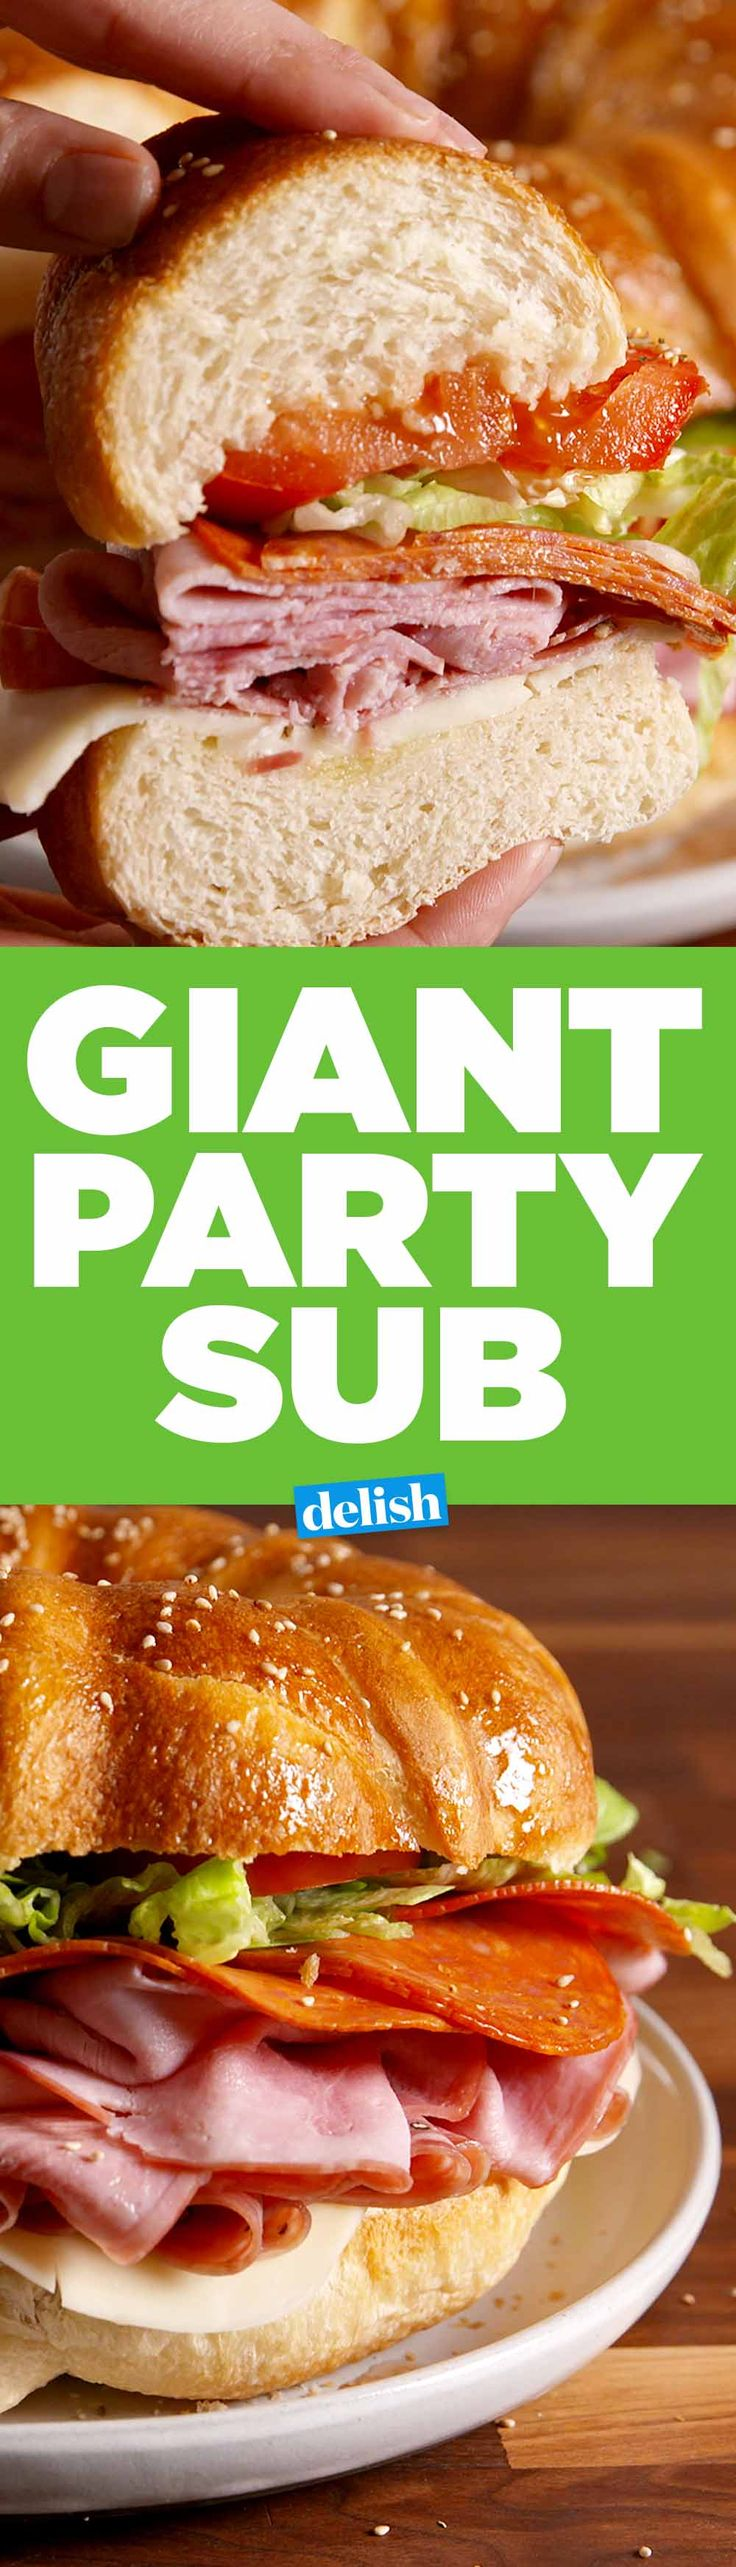 This giant party sub will feed your squad and save you cash. Get the recipe on Delish.com.